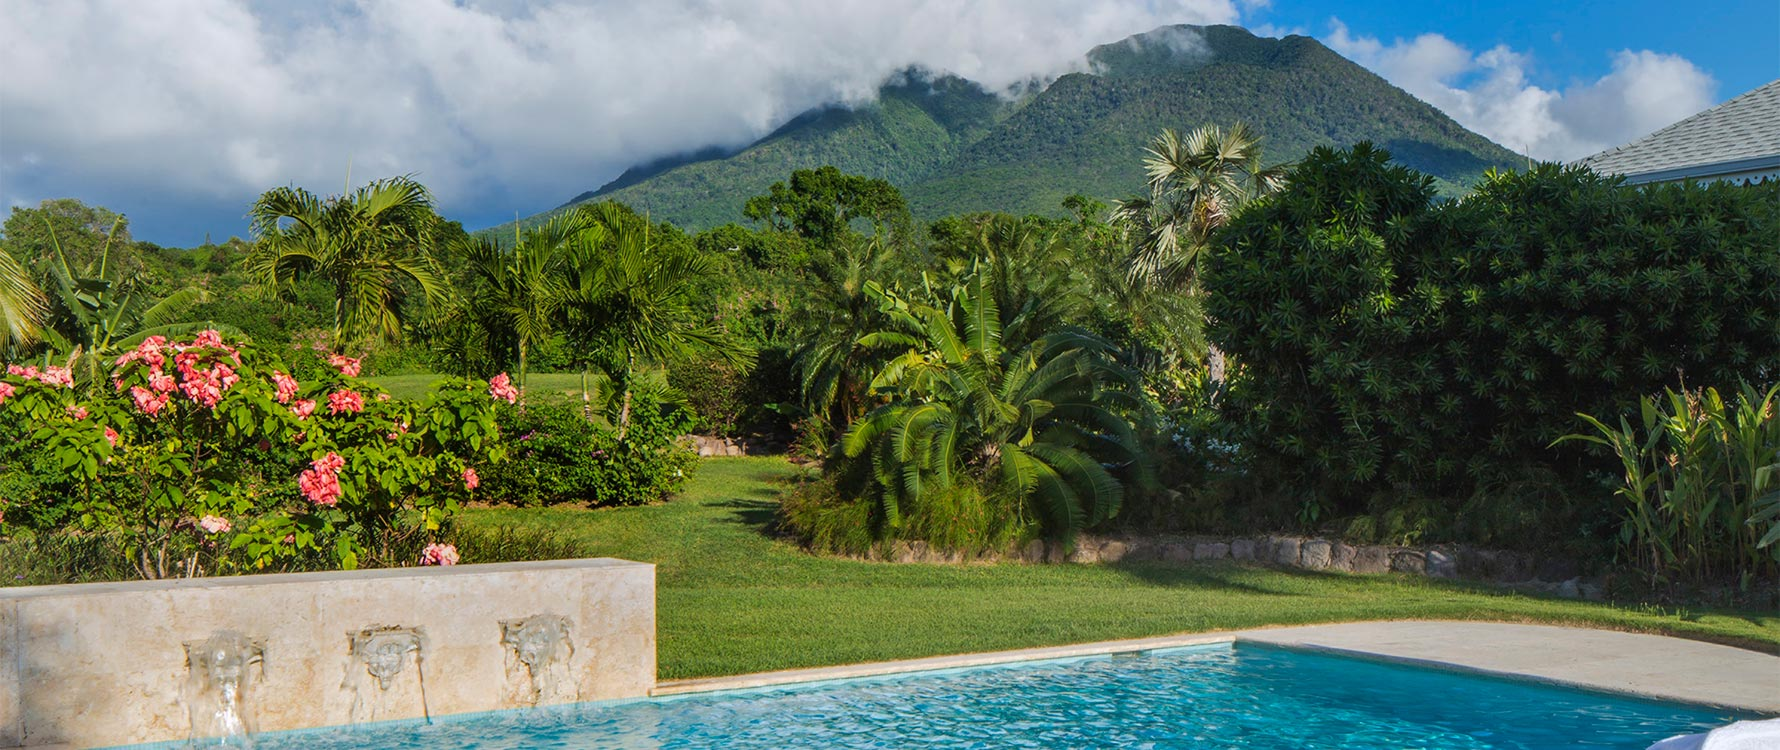 Pool Deck closer in with Nevis Peak